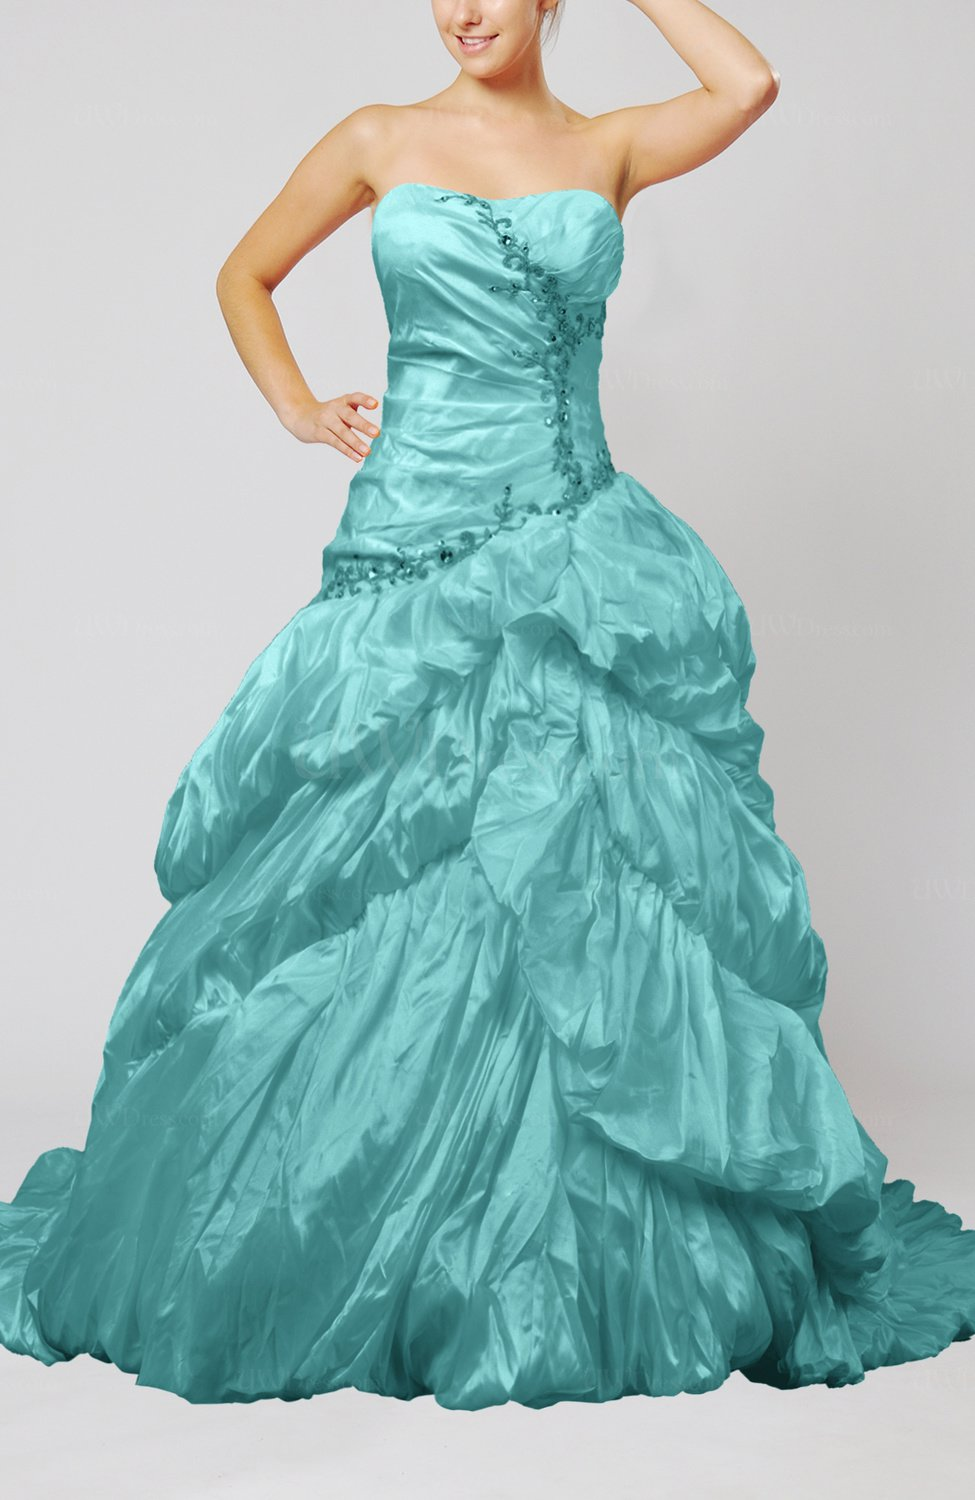 Turquoise Disney Princess Hall Strapless Sleeveless Taffeta Beading ...